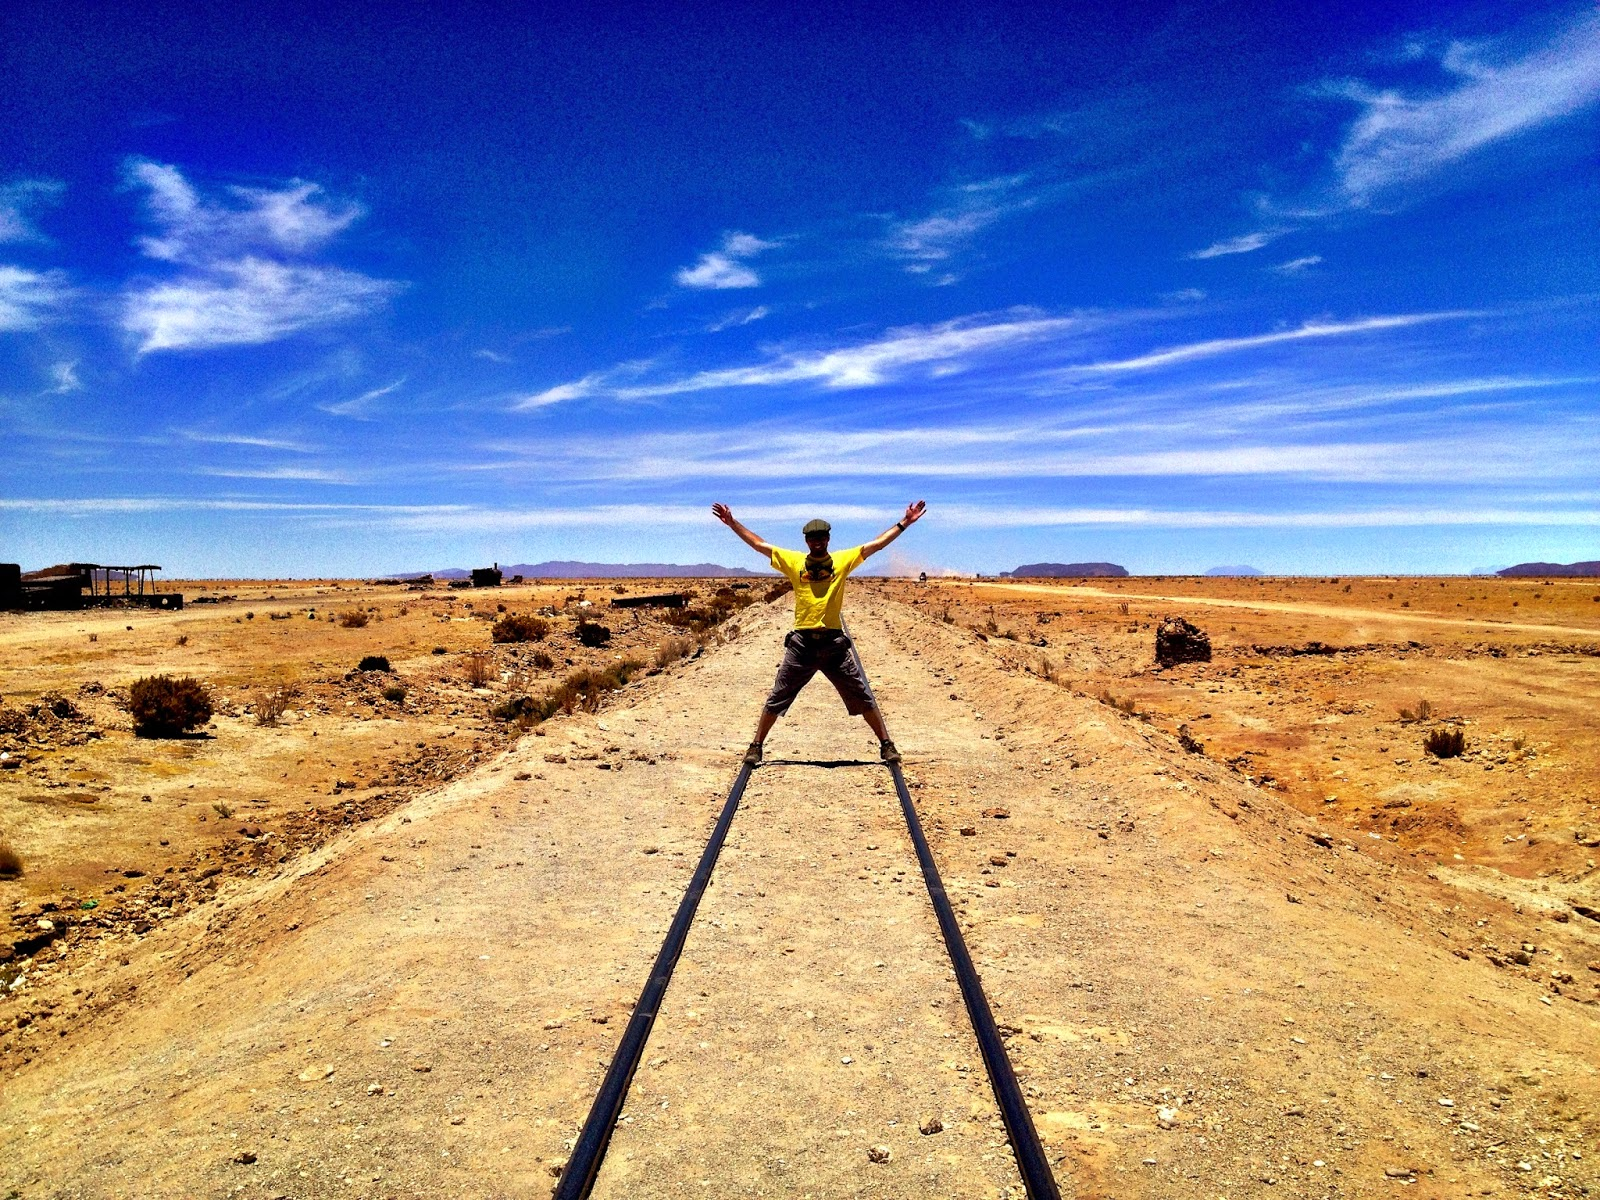 Standing on abandoned train tracks - Uyuni